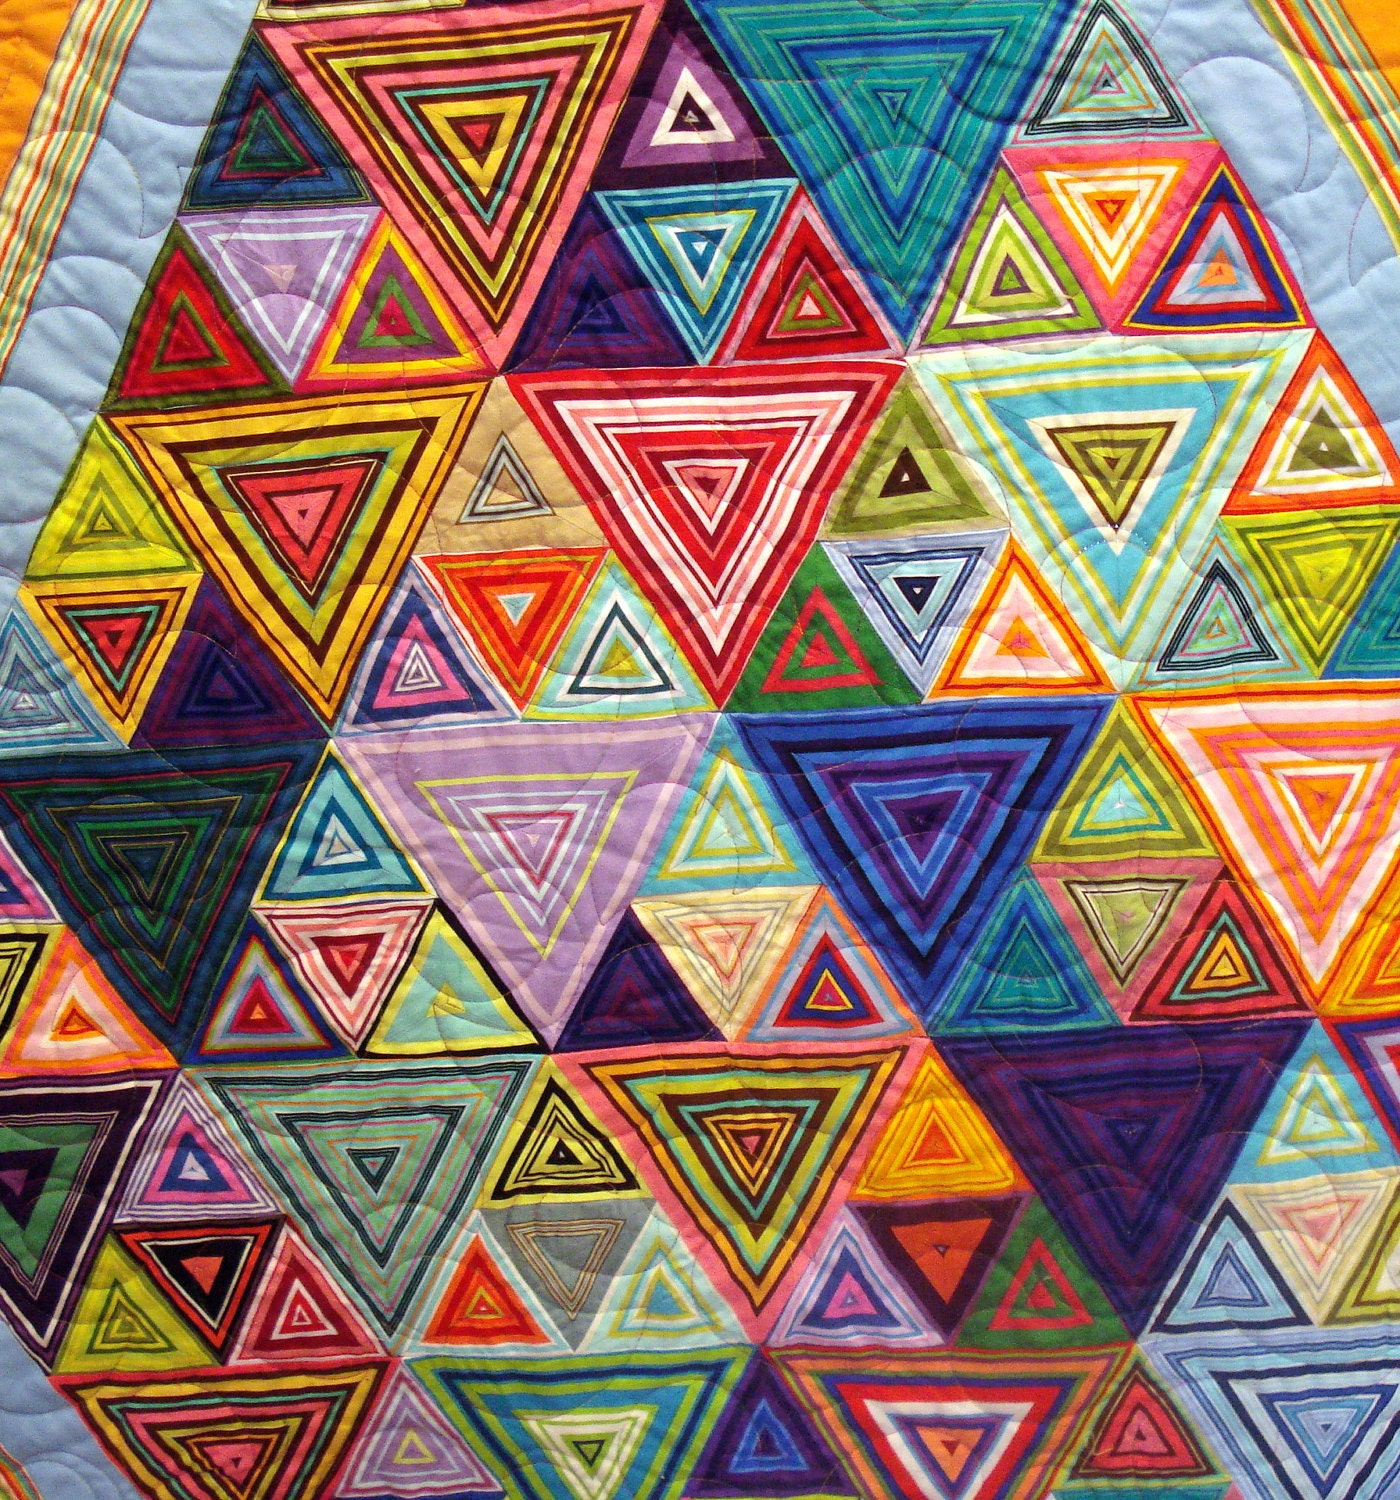 Twin Quilt In Colorful Striped Triangles - uniquelynancy